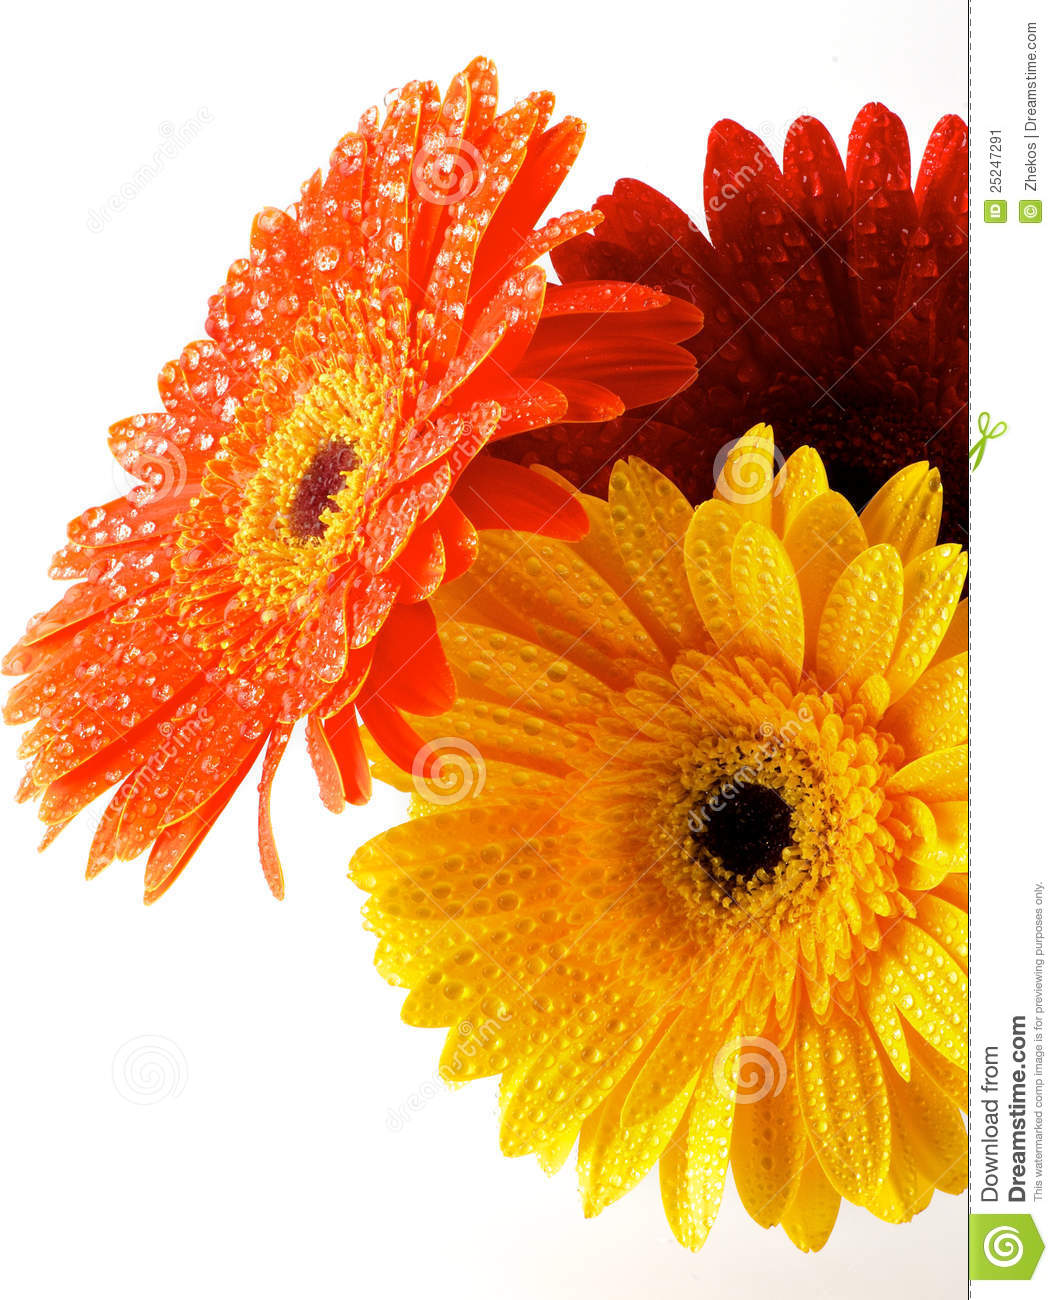 Red orange and yellow gerbera flowers stock image image of abloom red orange and yellow gerbera flowers mightylinksfo